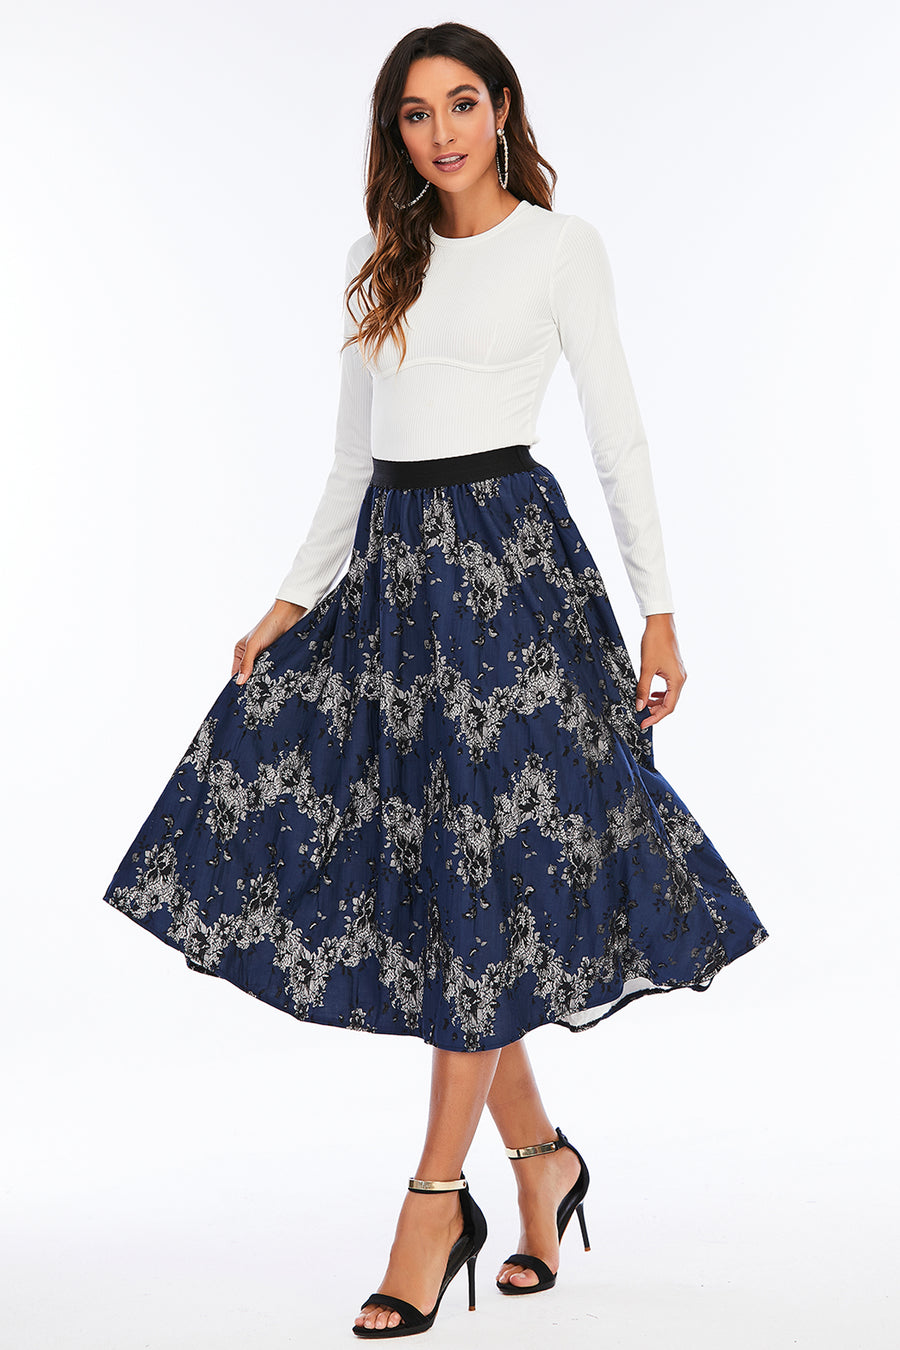 Mantra Pakistan Navy Floral lace Skirt | Western Wear